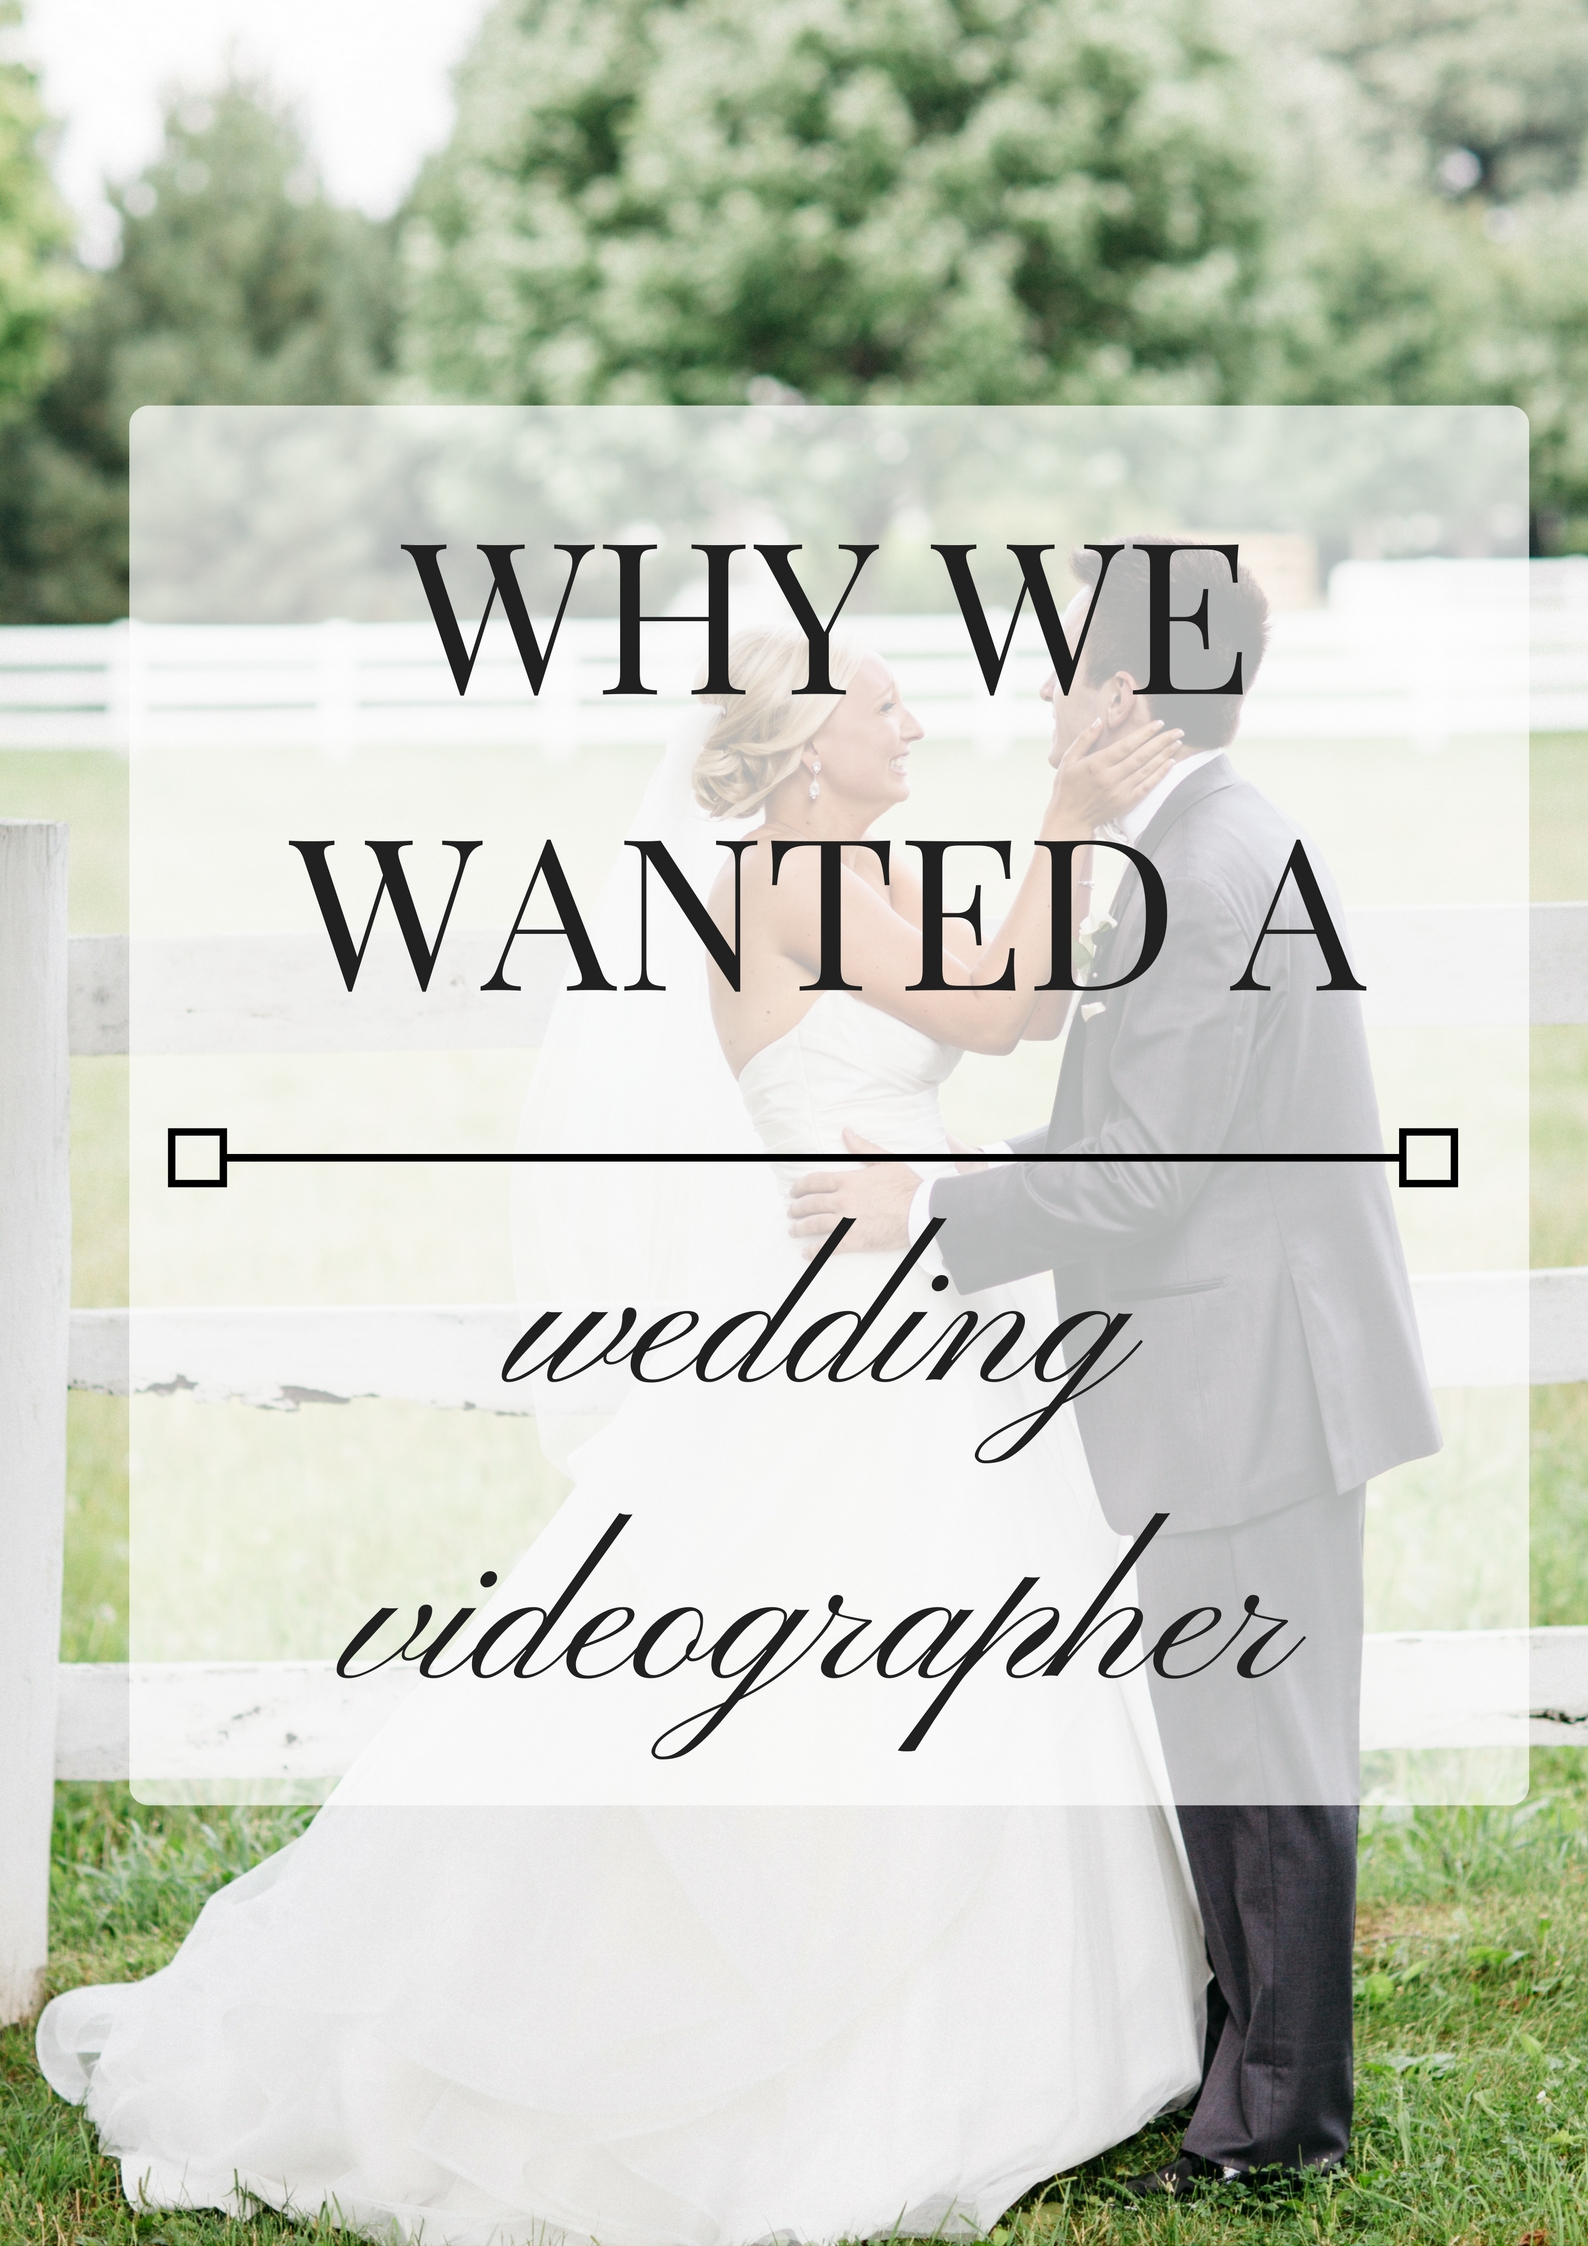 Why we wanted a wedding videographer [our wedding video]